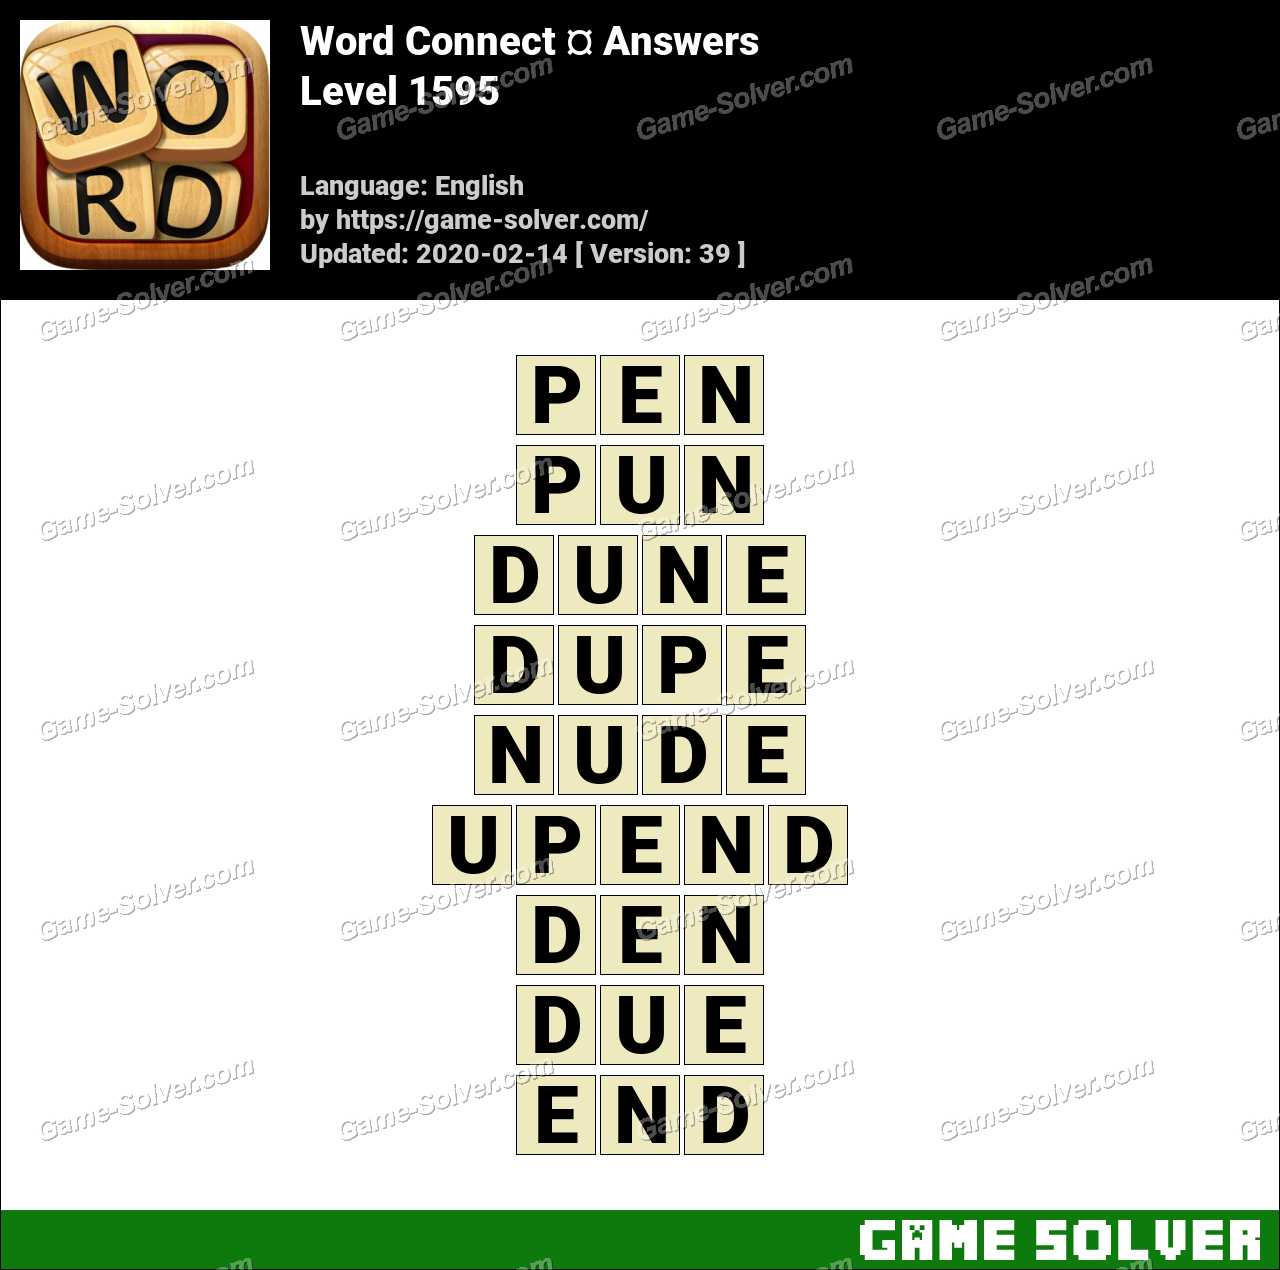 Word Connect Level 1595 Answers